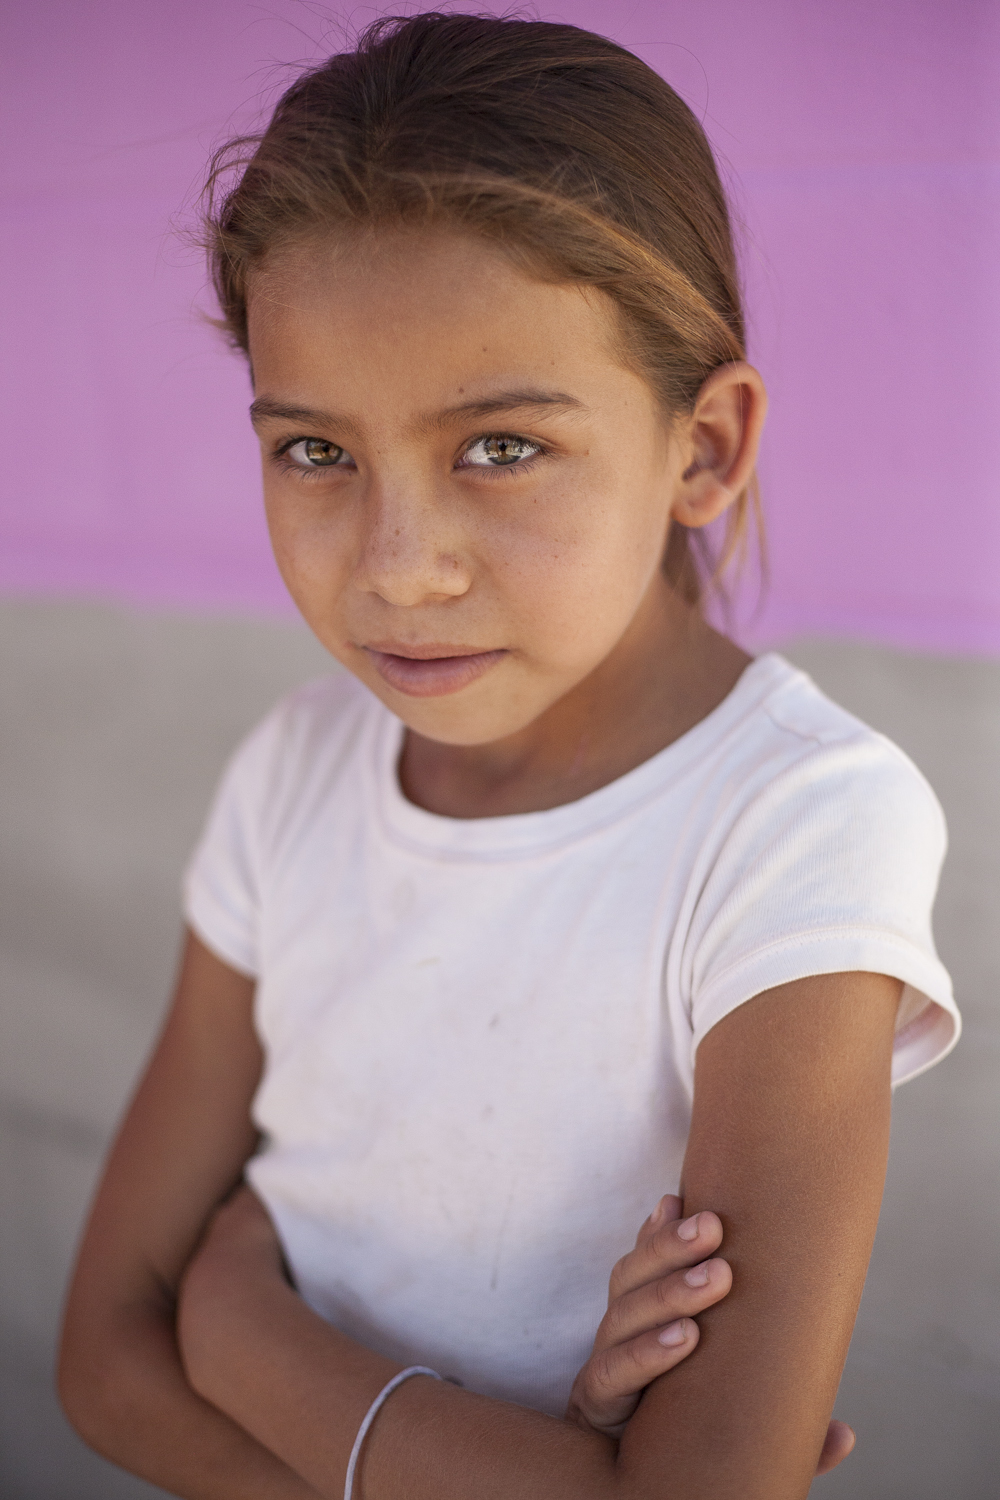 Veronica Johanna, 11, is one of the many children in Amatitán's new  post-massacre generation. The children attend school in a building next  to the church, where the community gathers and prays to the memory of their families and to a peaceful future.